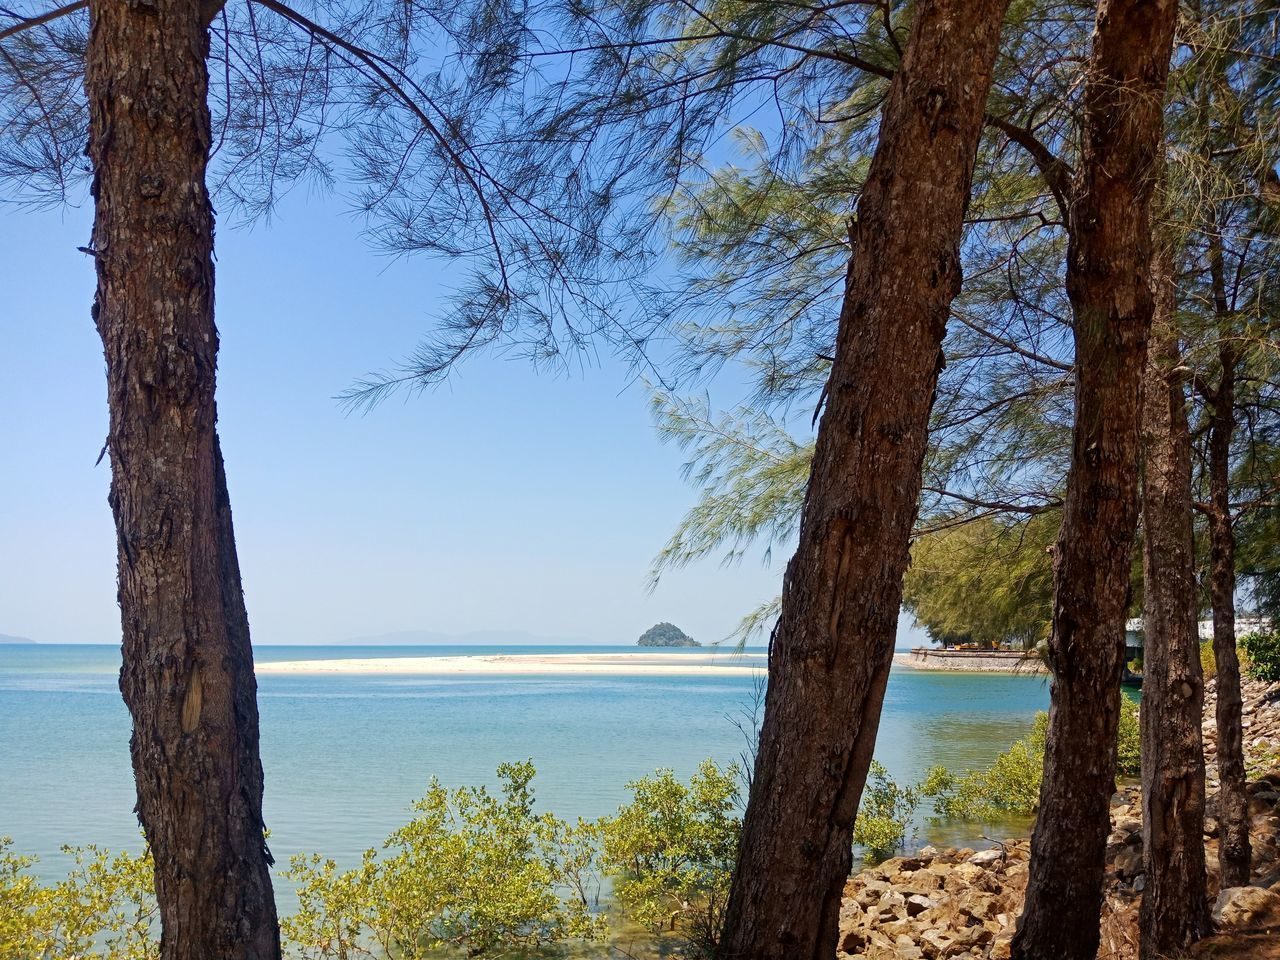 SCENIC VIEW OF SEA BY TREES AGAINST SKY